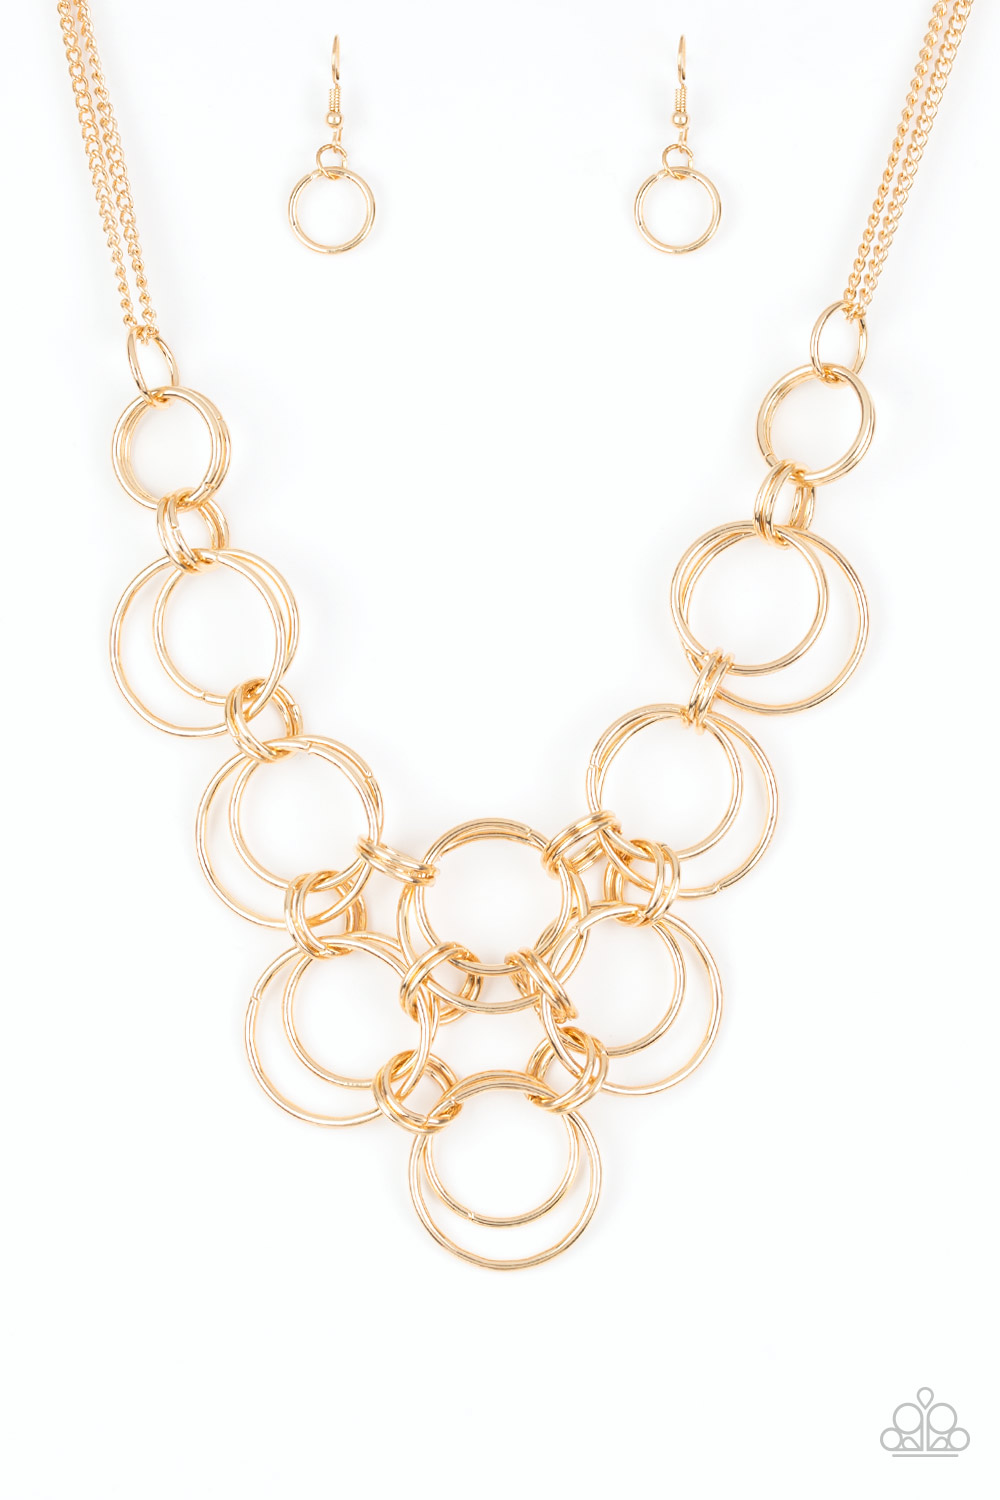 Ringing off the Hook Gold Necklace $5.00 www.my-bling.com